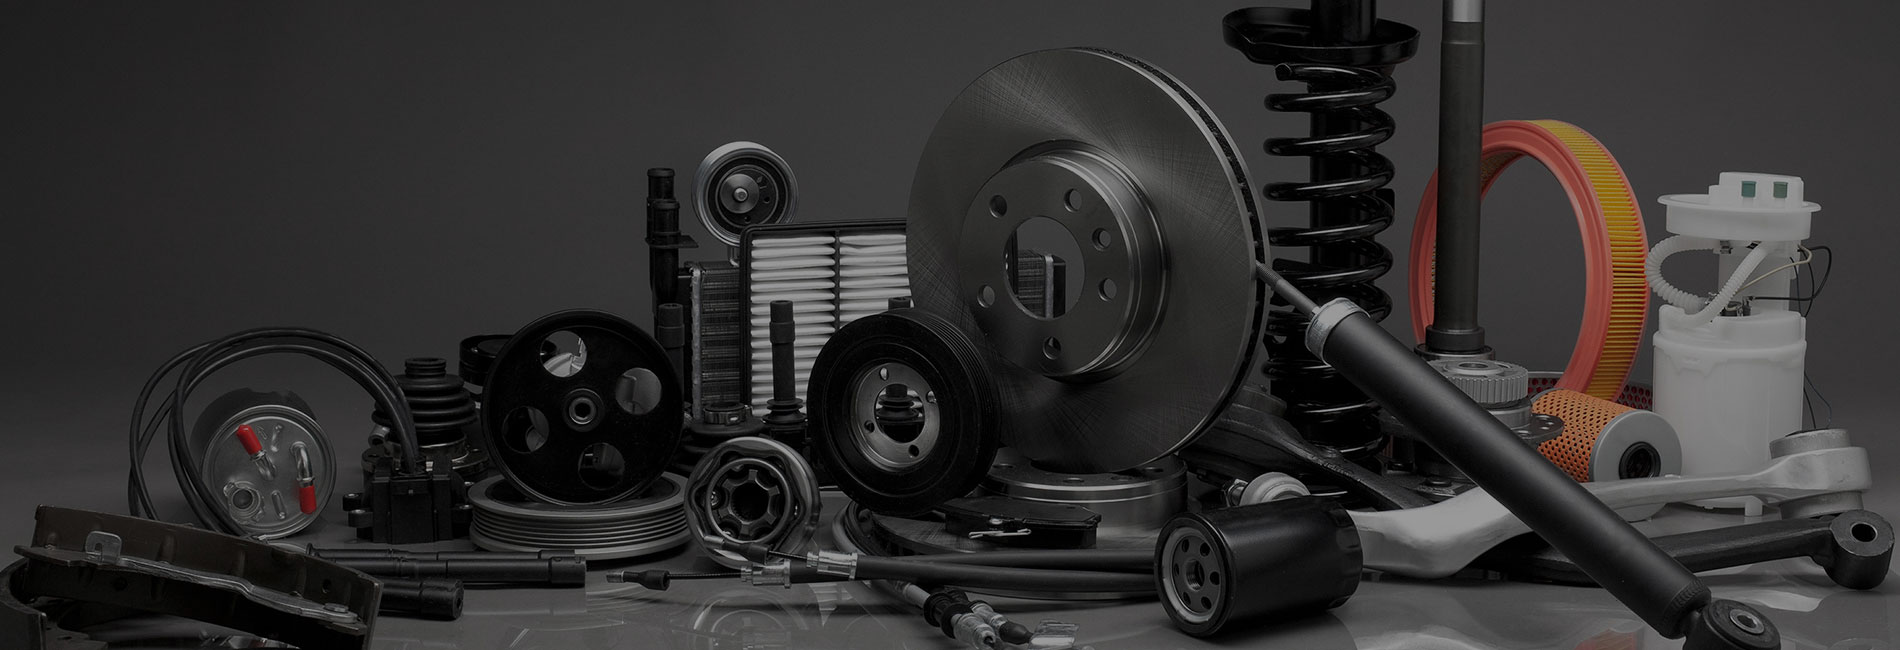 A variety of auto parts